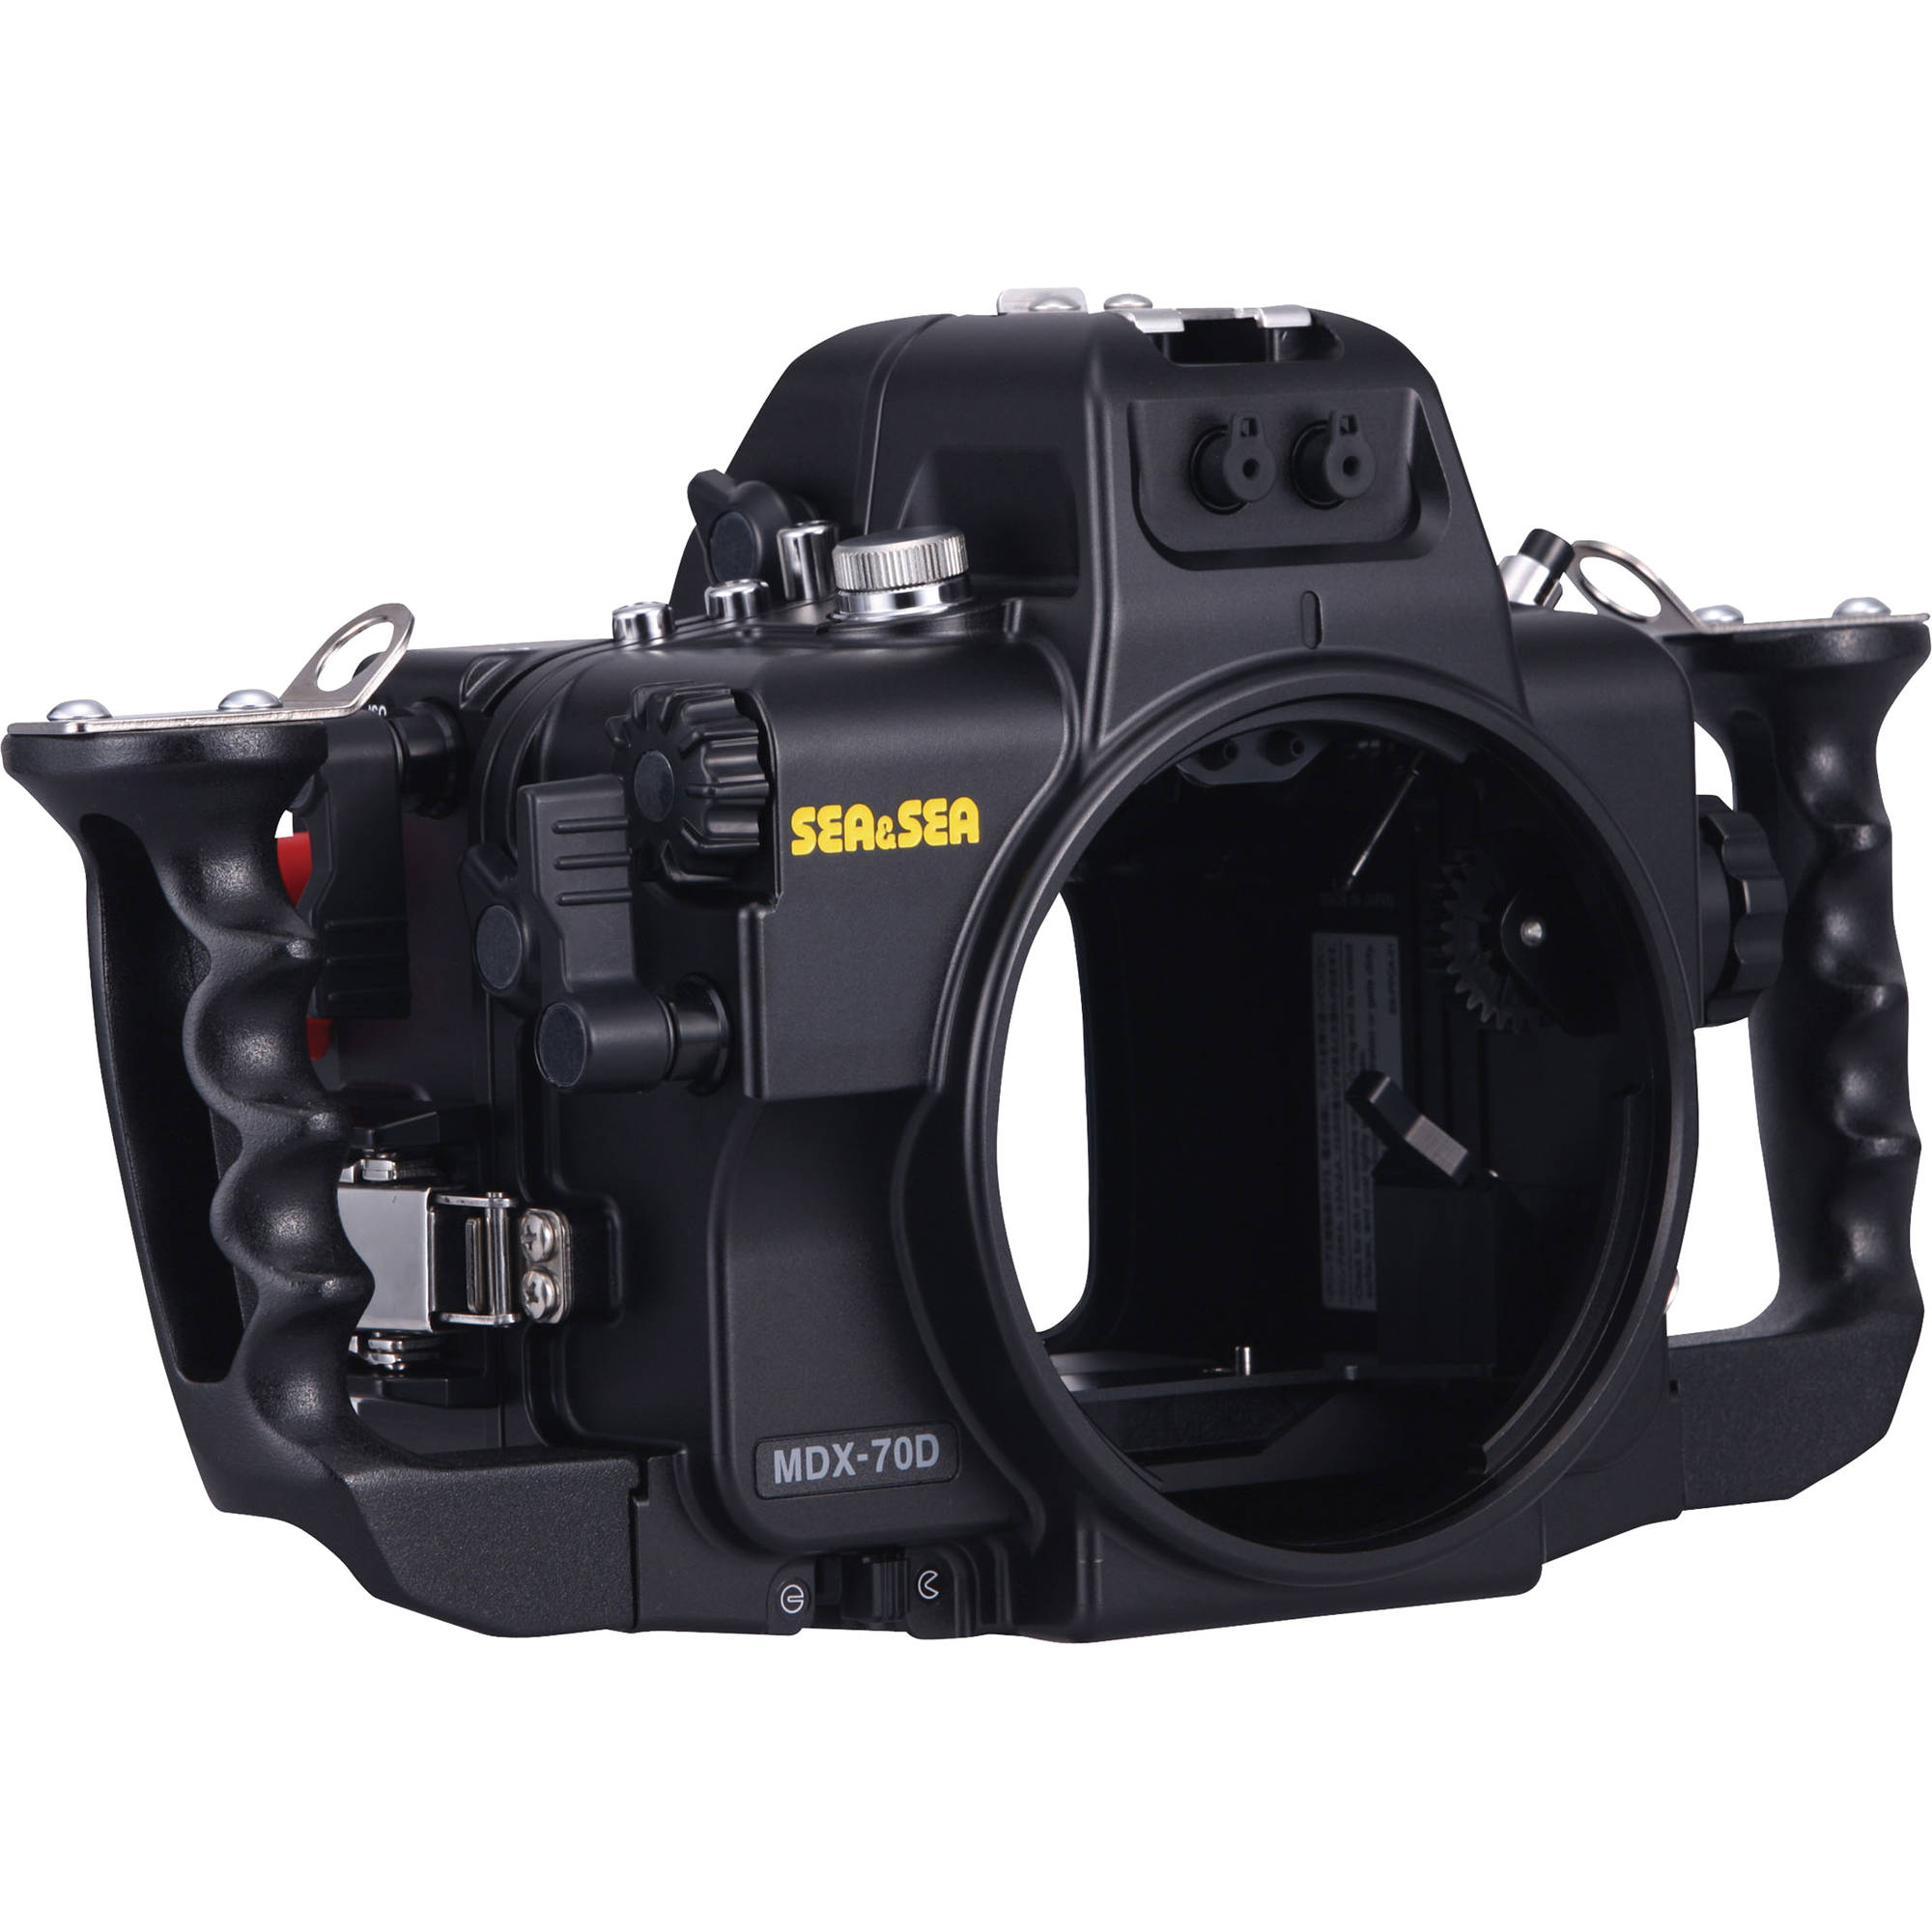 Camera Eos 70d Dslr Camera sea mdx 70d underwater housing for canon eos ss 06169a dslr camera